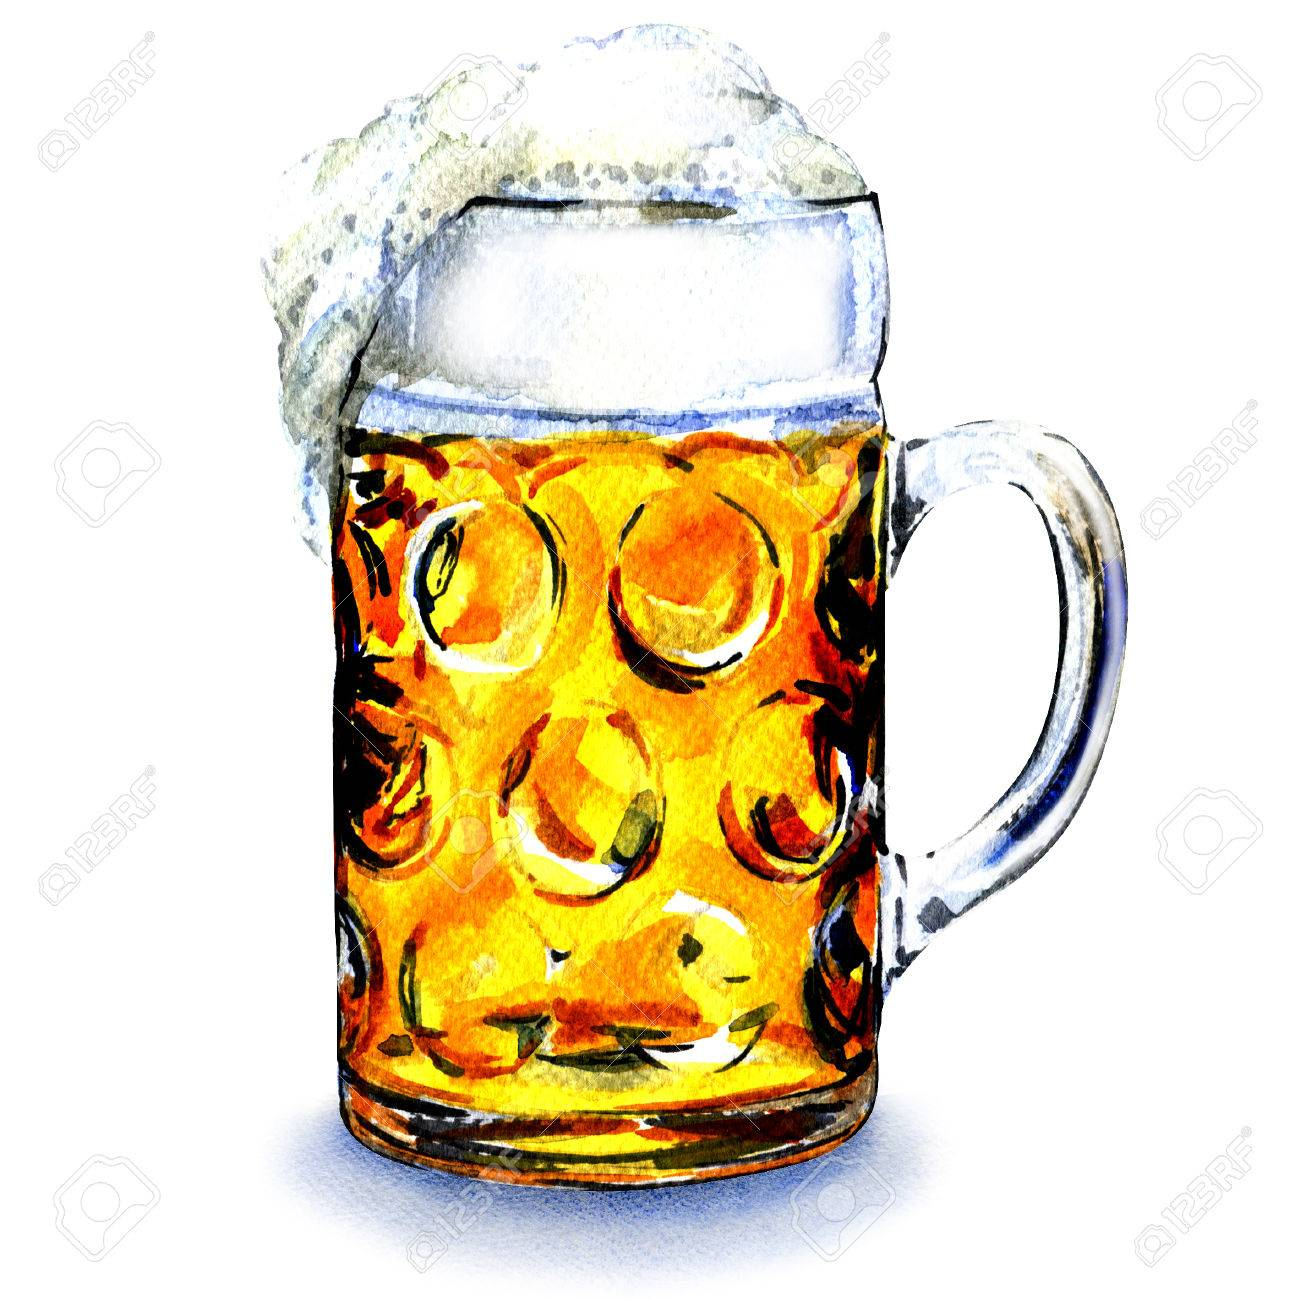 Glass Mug With Beer Isolated Watercolor Painting On White Background Banco De Imagens Royalty Free Ilustracoes Imagens E Banco De Imagens Image 47197848